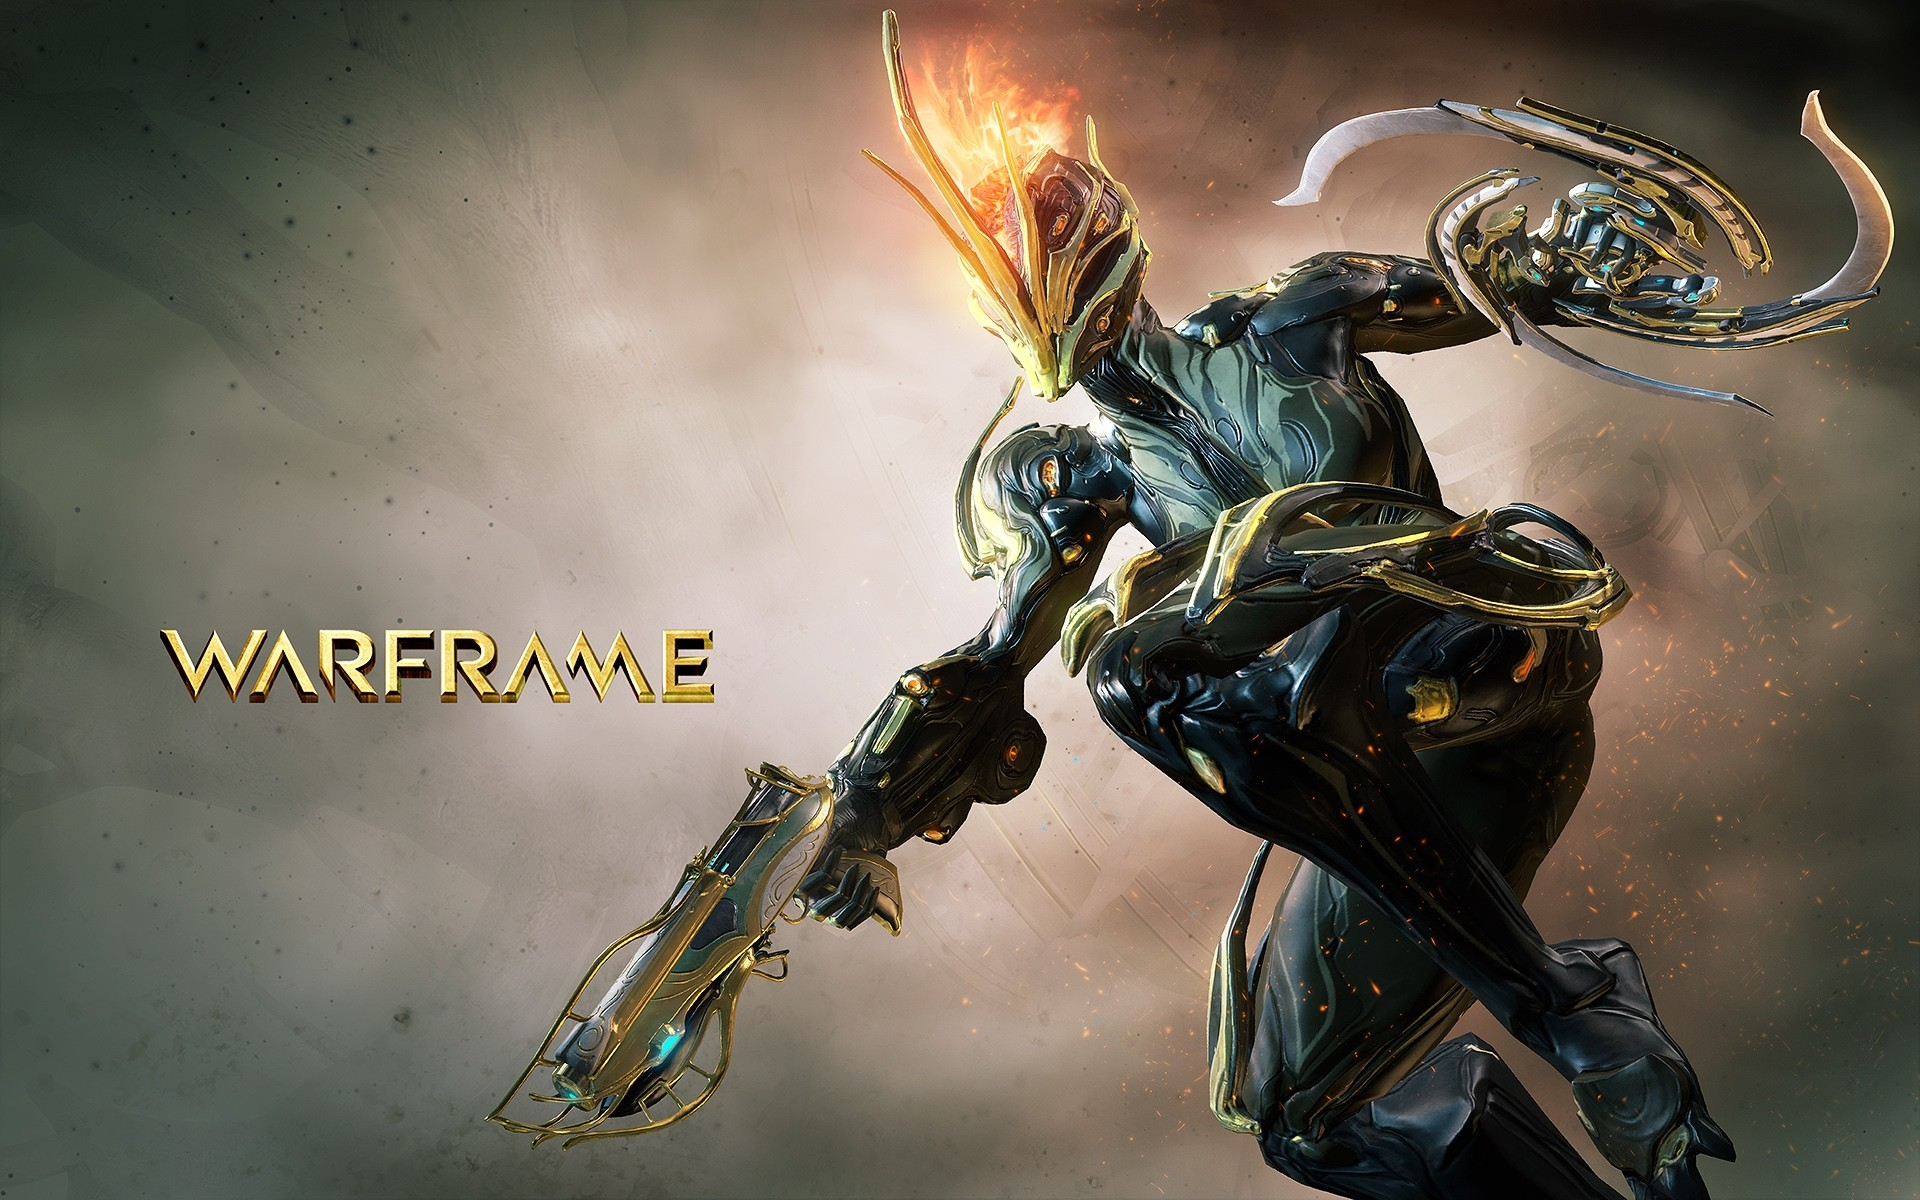 Res: 1920x1200, Warframe Wallpapers Hd Resolution